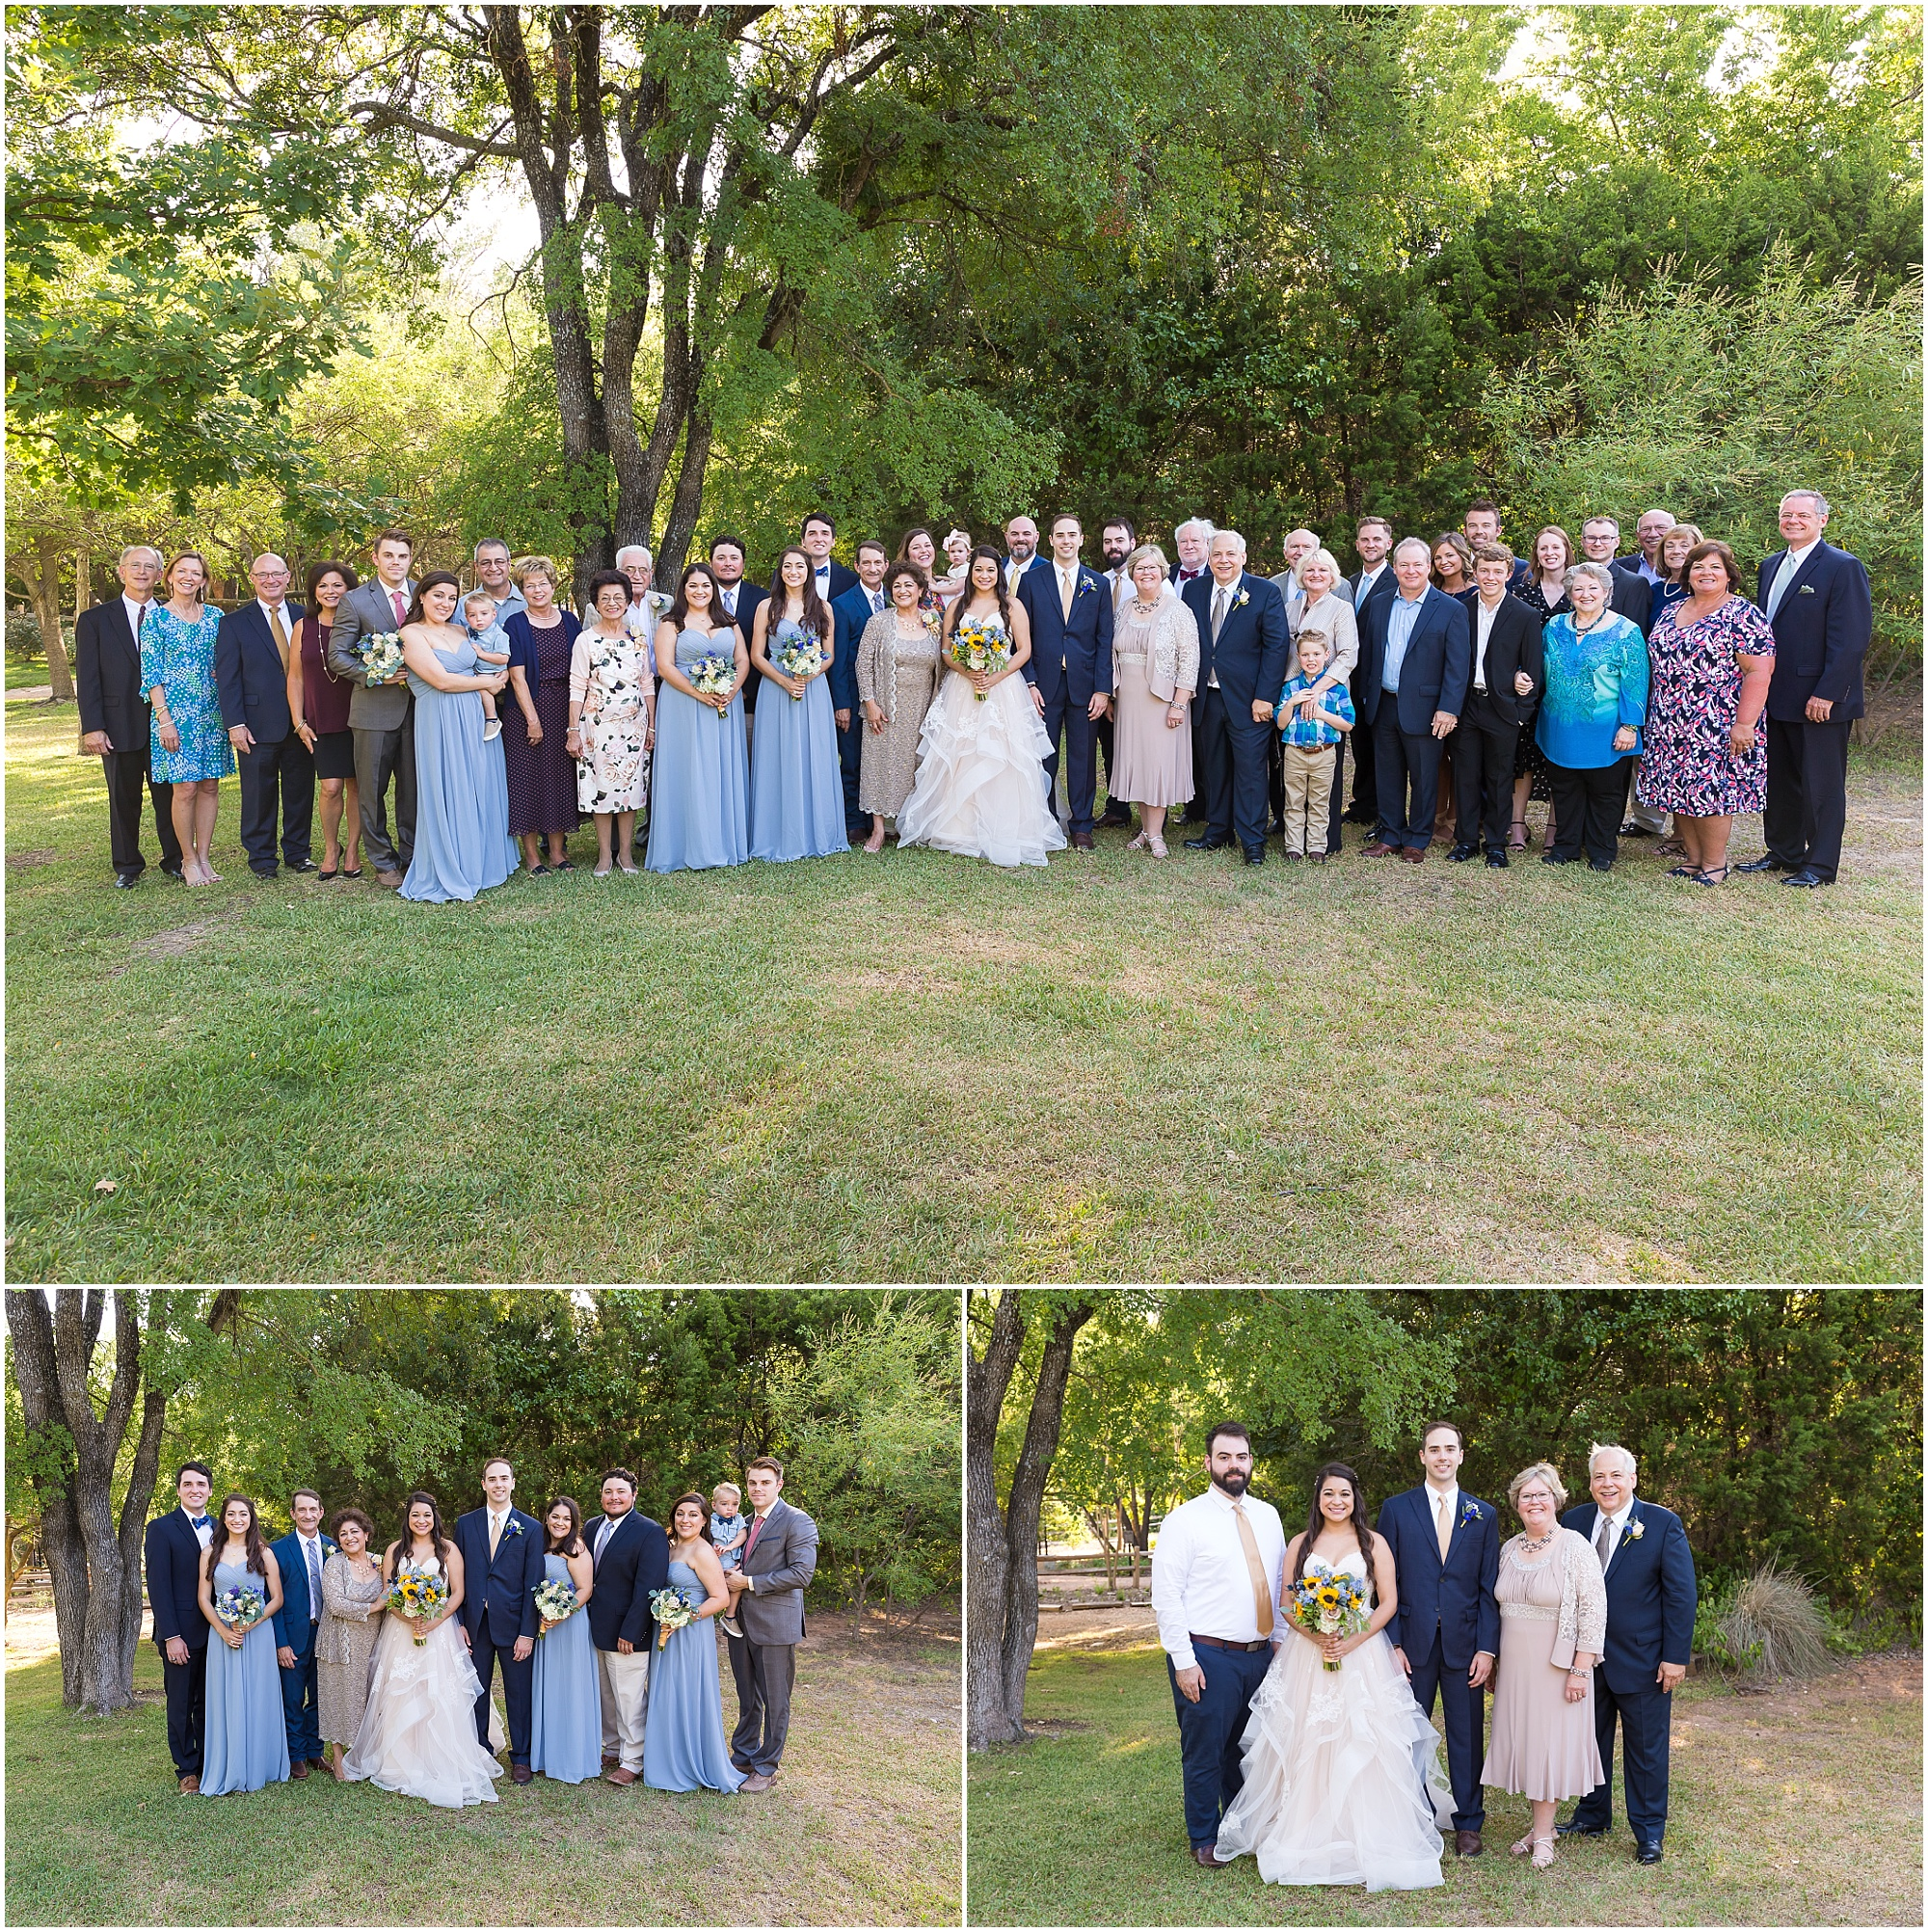 Arboretum-Waco-Texas-Summer-Wedding_0040.jpg